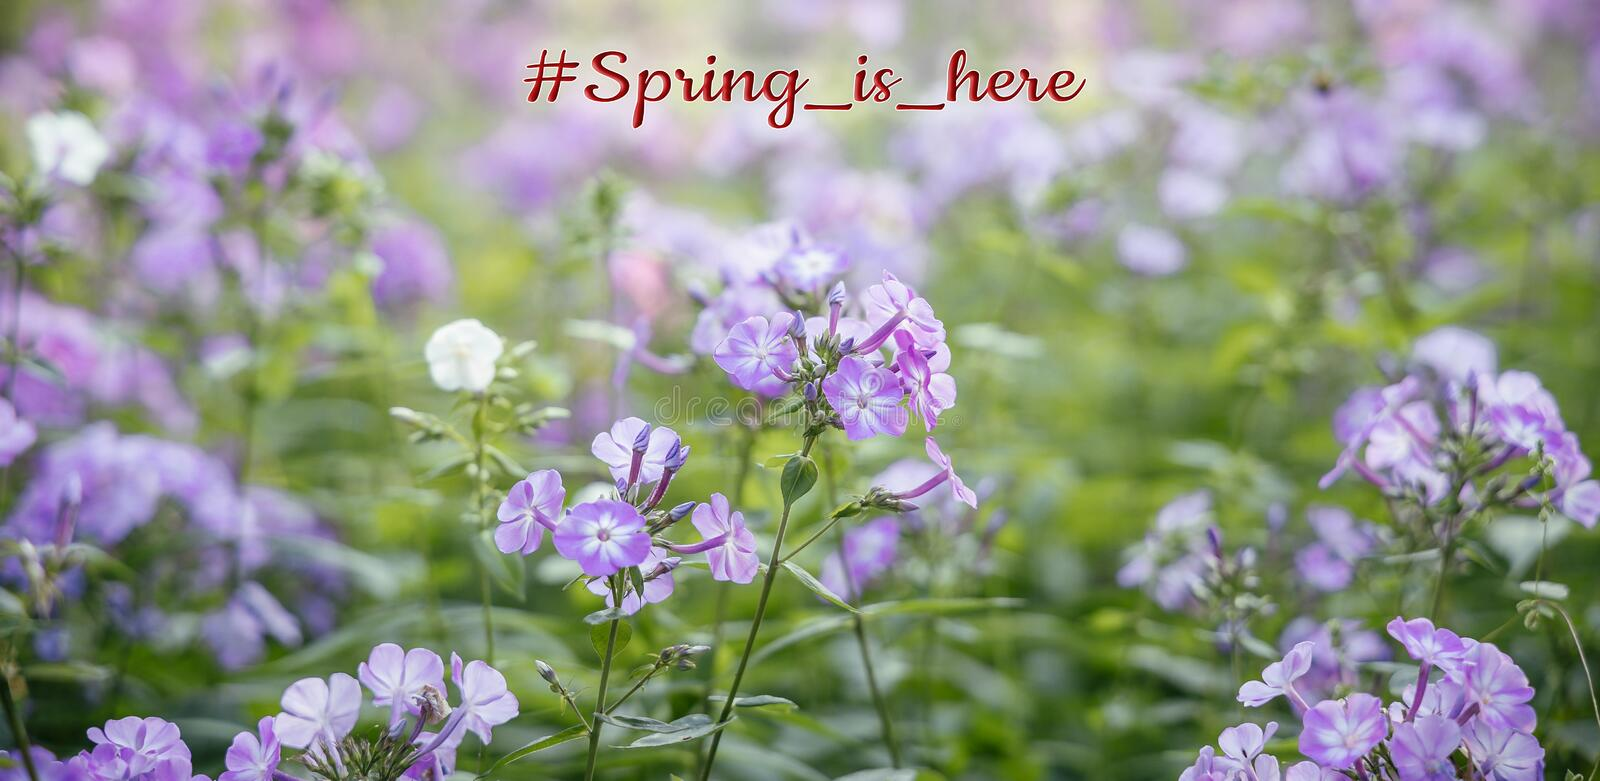 Spring time post card spring is here text on blooming flower bed nature photography royalty free stock photography